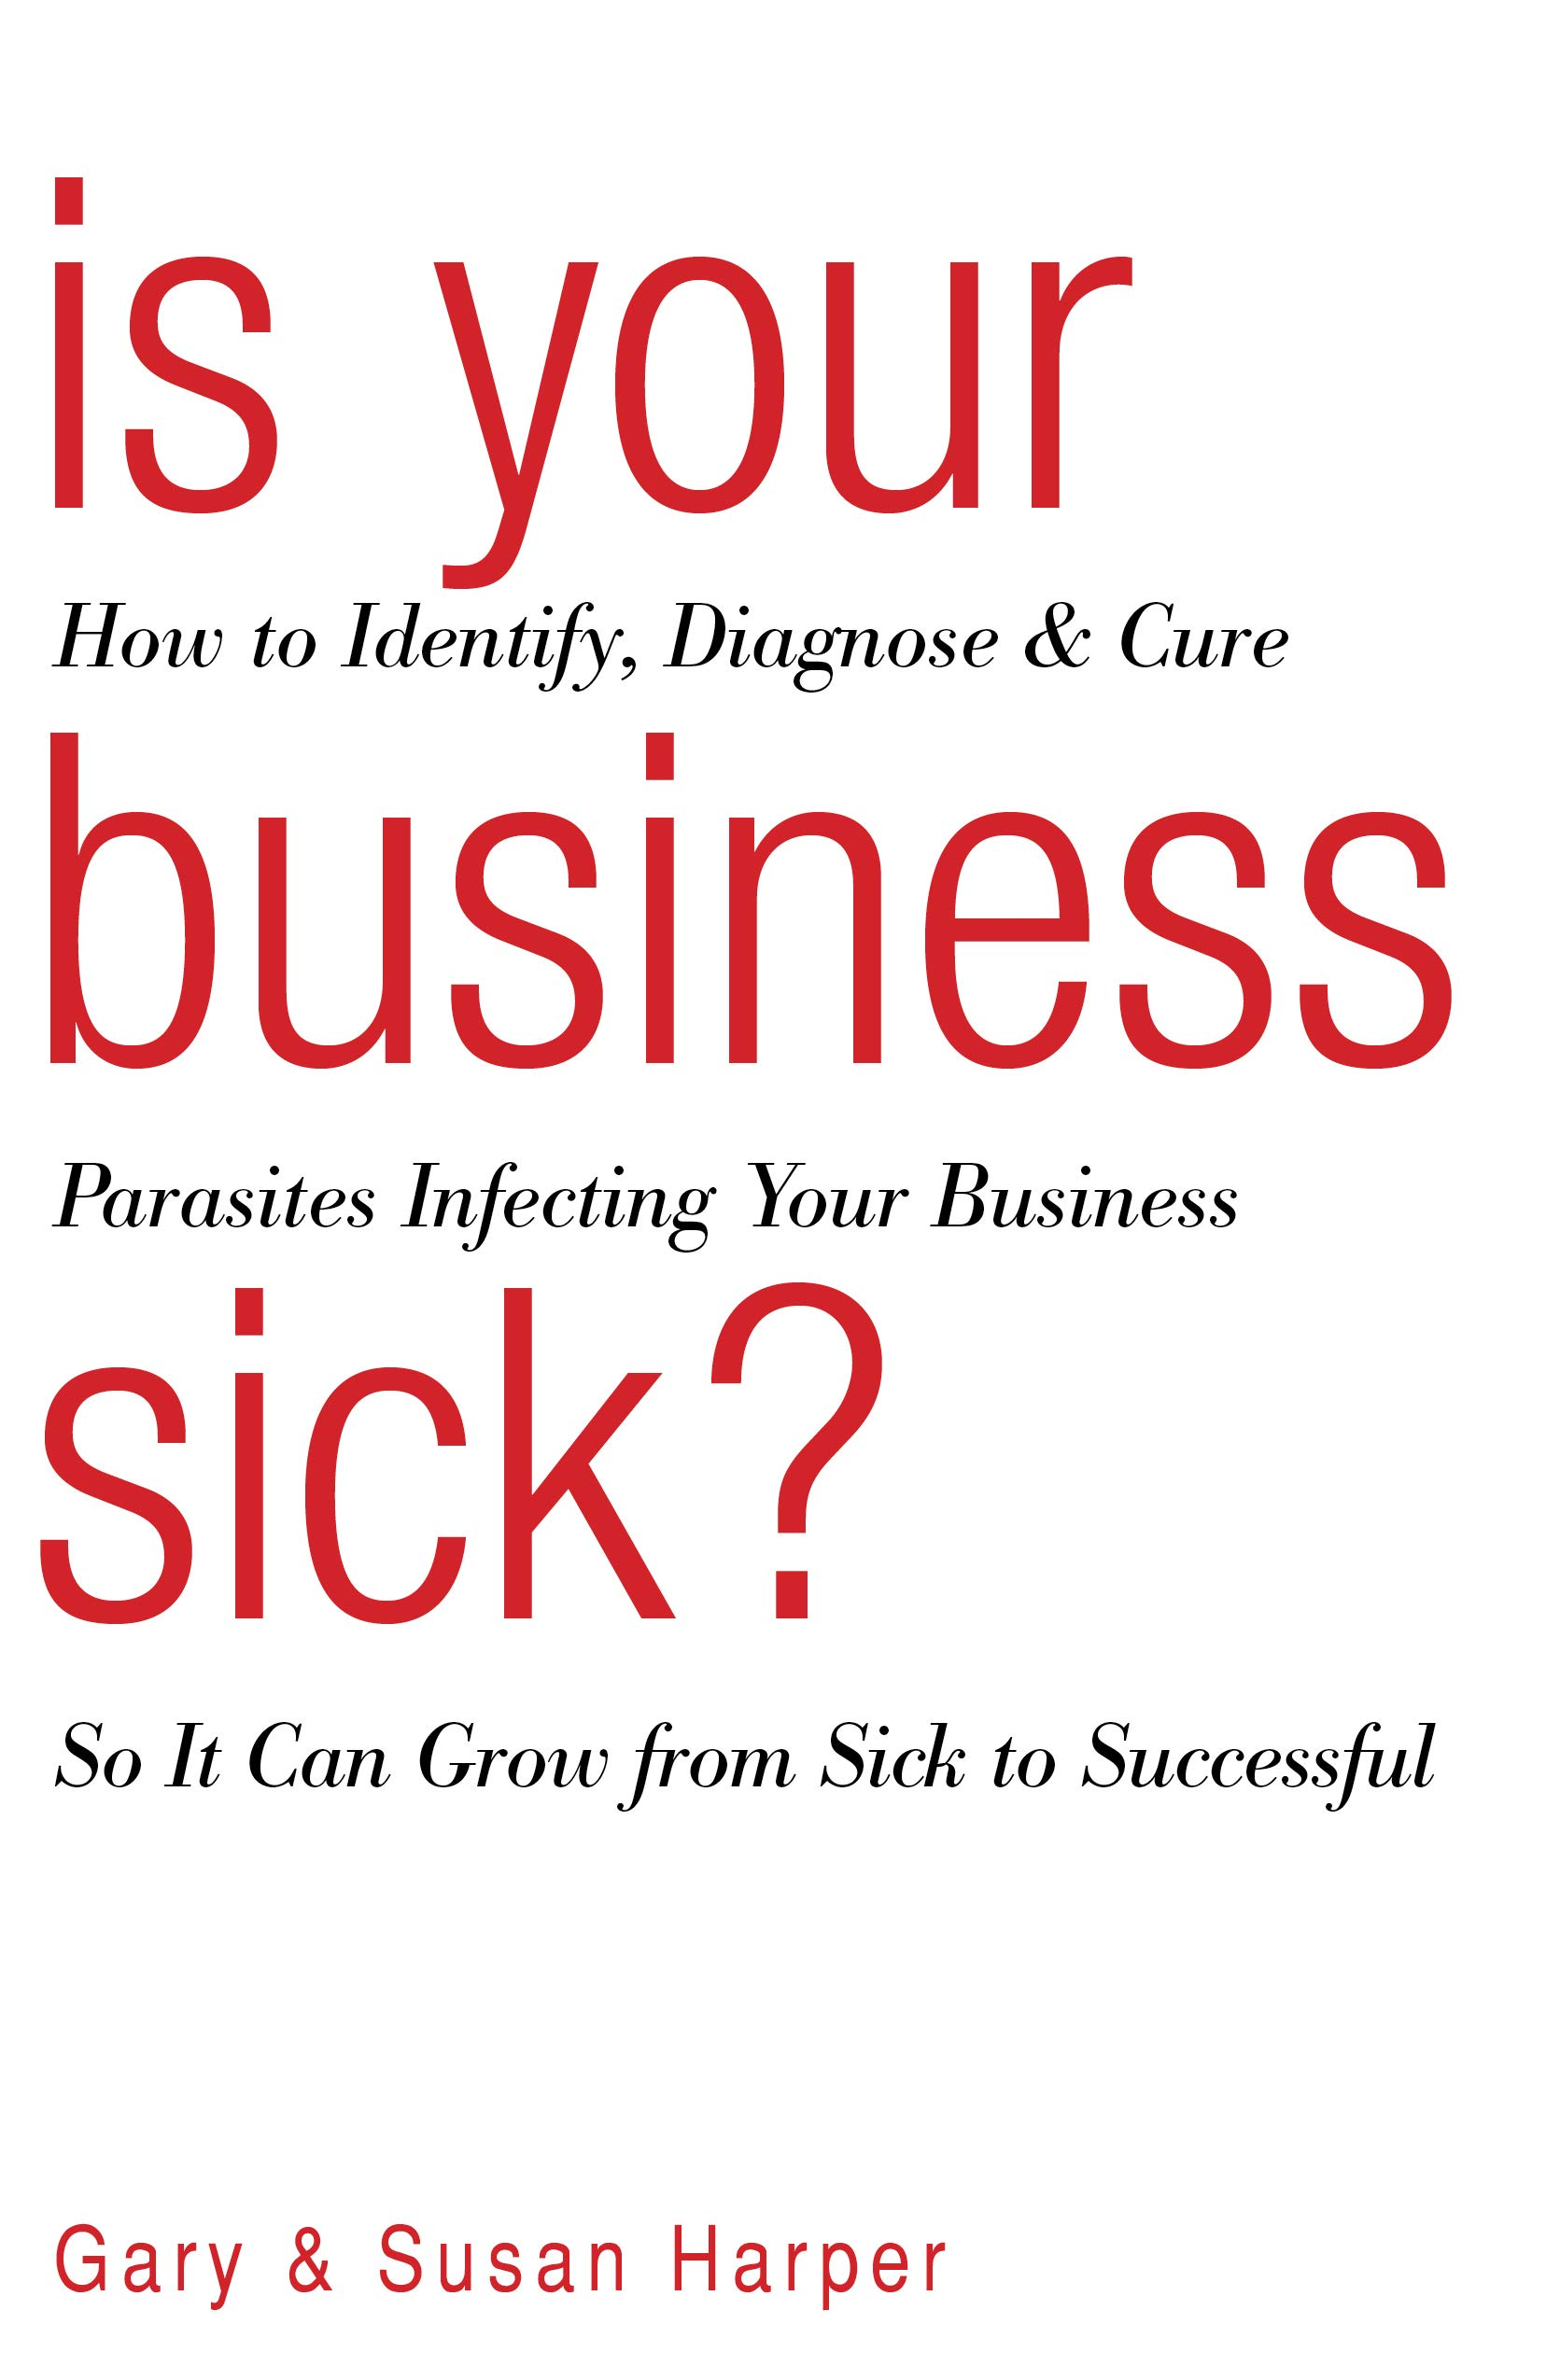 Is Your Business Sick?: How to Identify, Diagnose, and Cure Parasites Infecting Your Business So It Can Grow from Sick to Successful